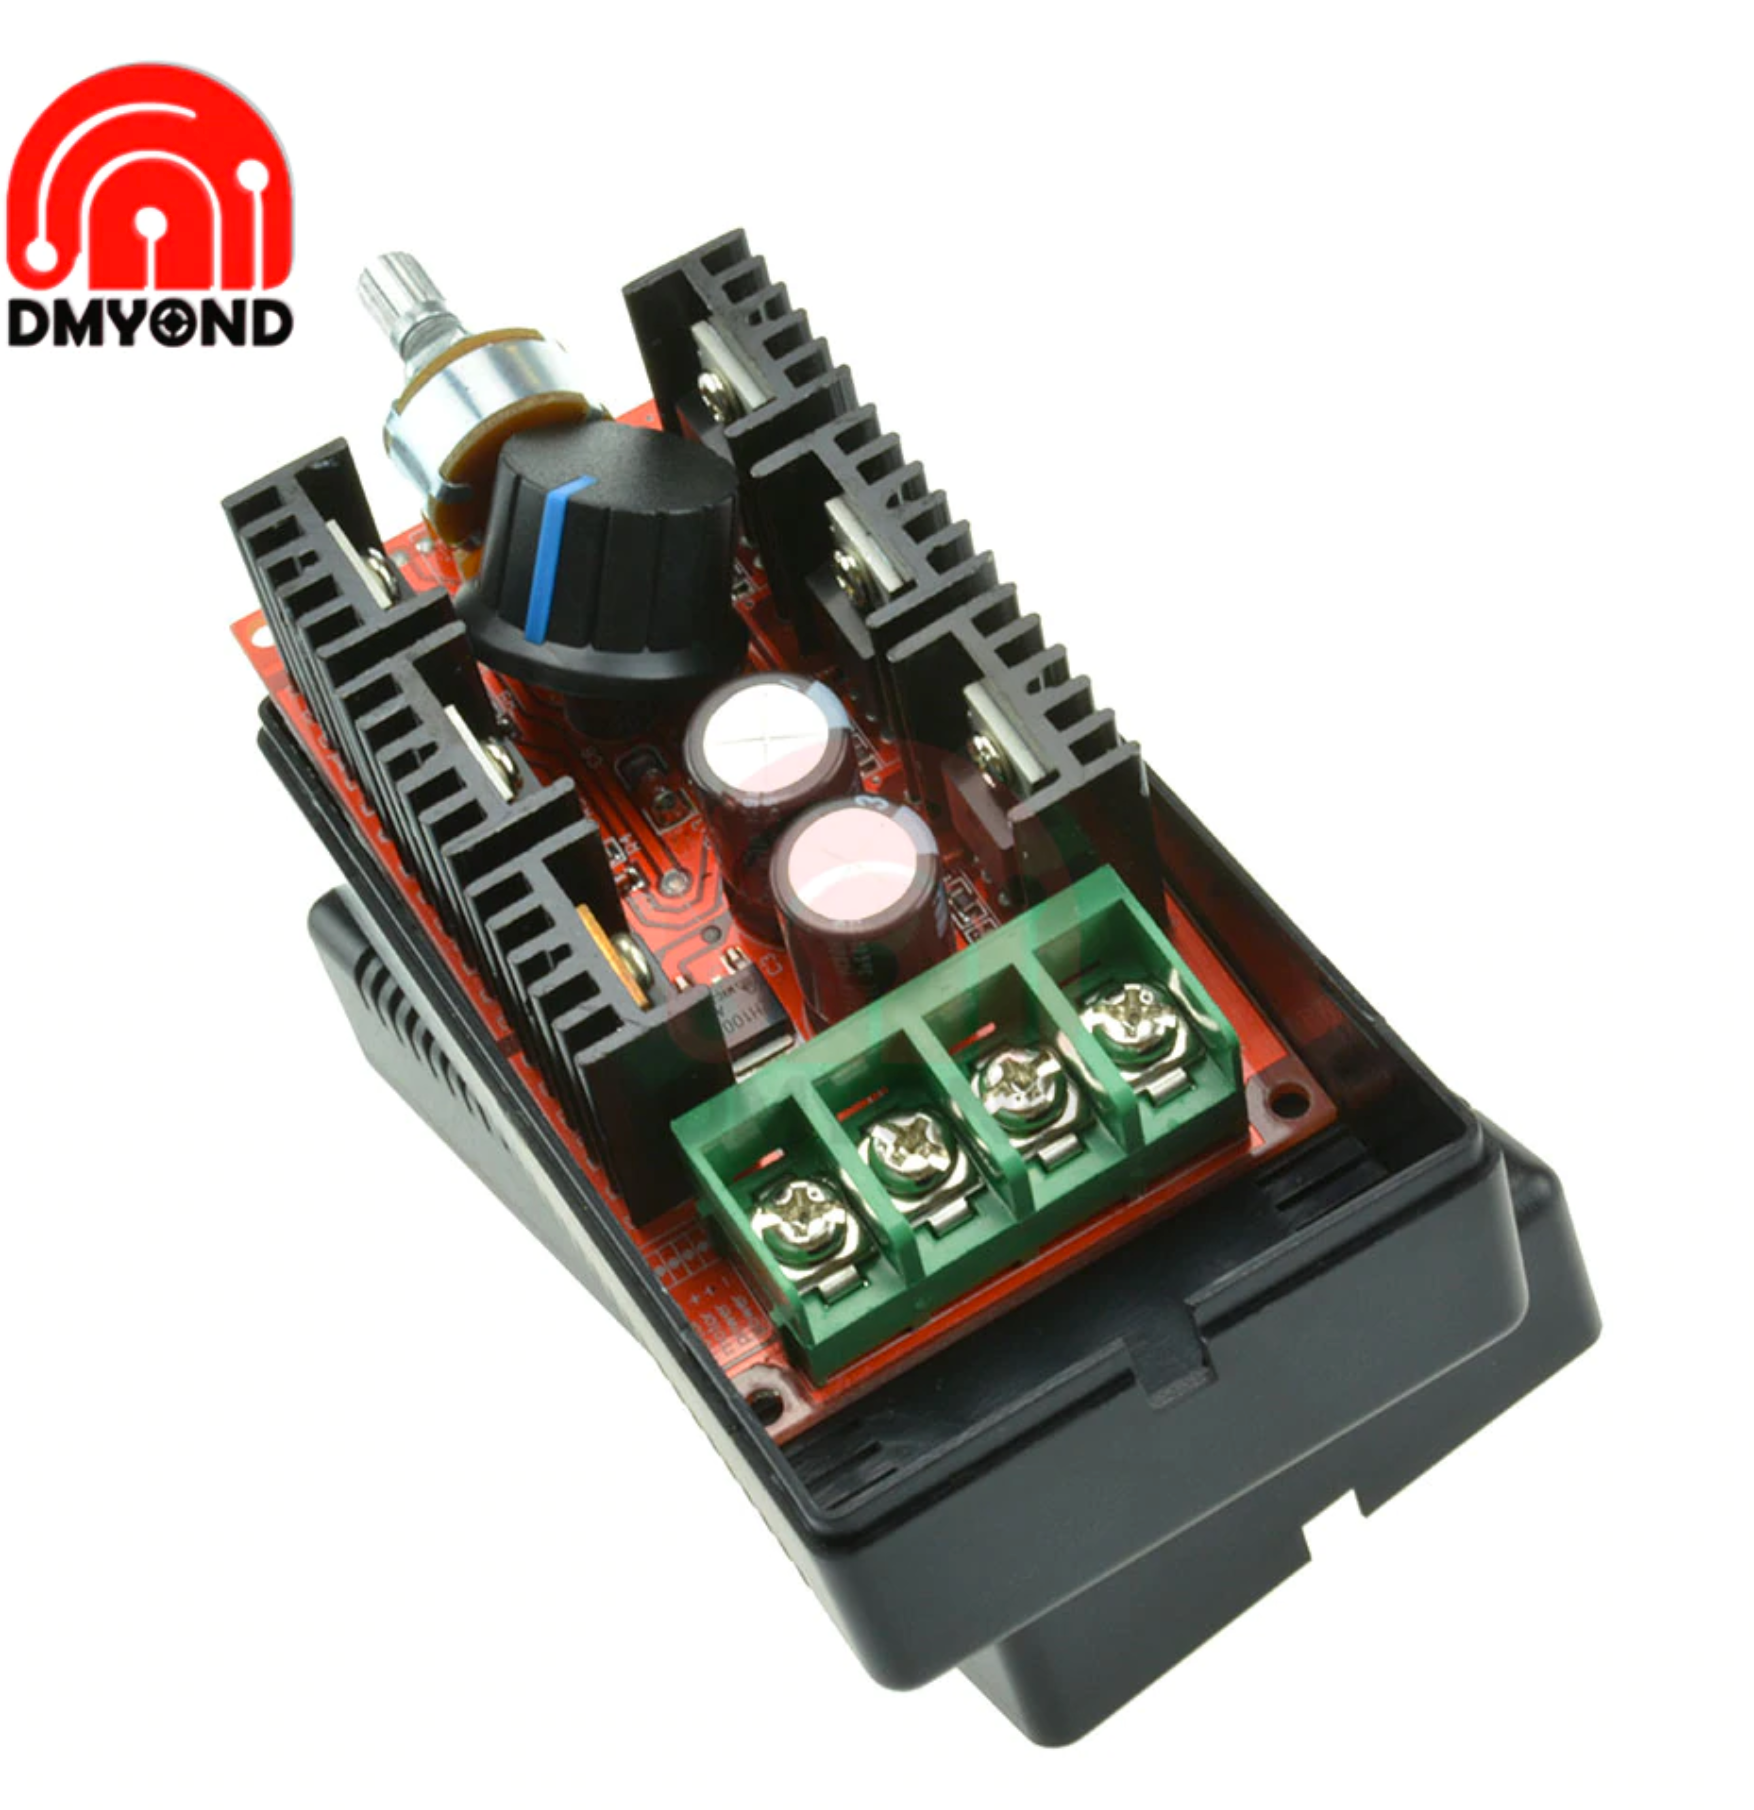 40A DC 9-50V Motor Speed Controller 2000W Voltage Regulator Dimming Dimmers Motor Speed Control Thermostat Electronic Module 12V